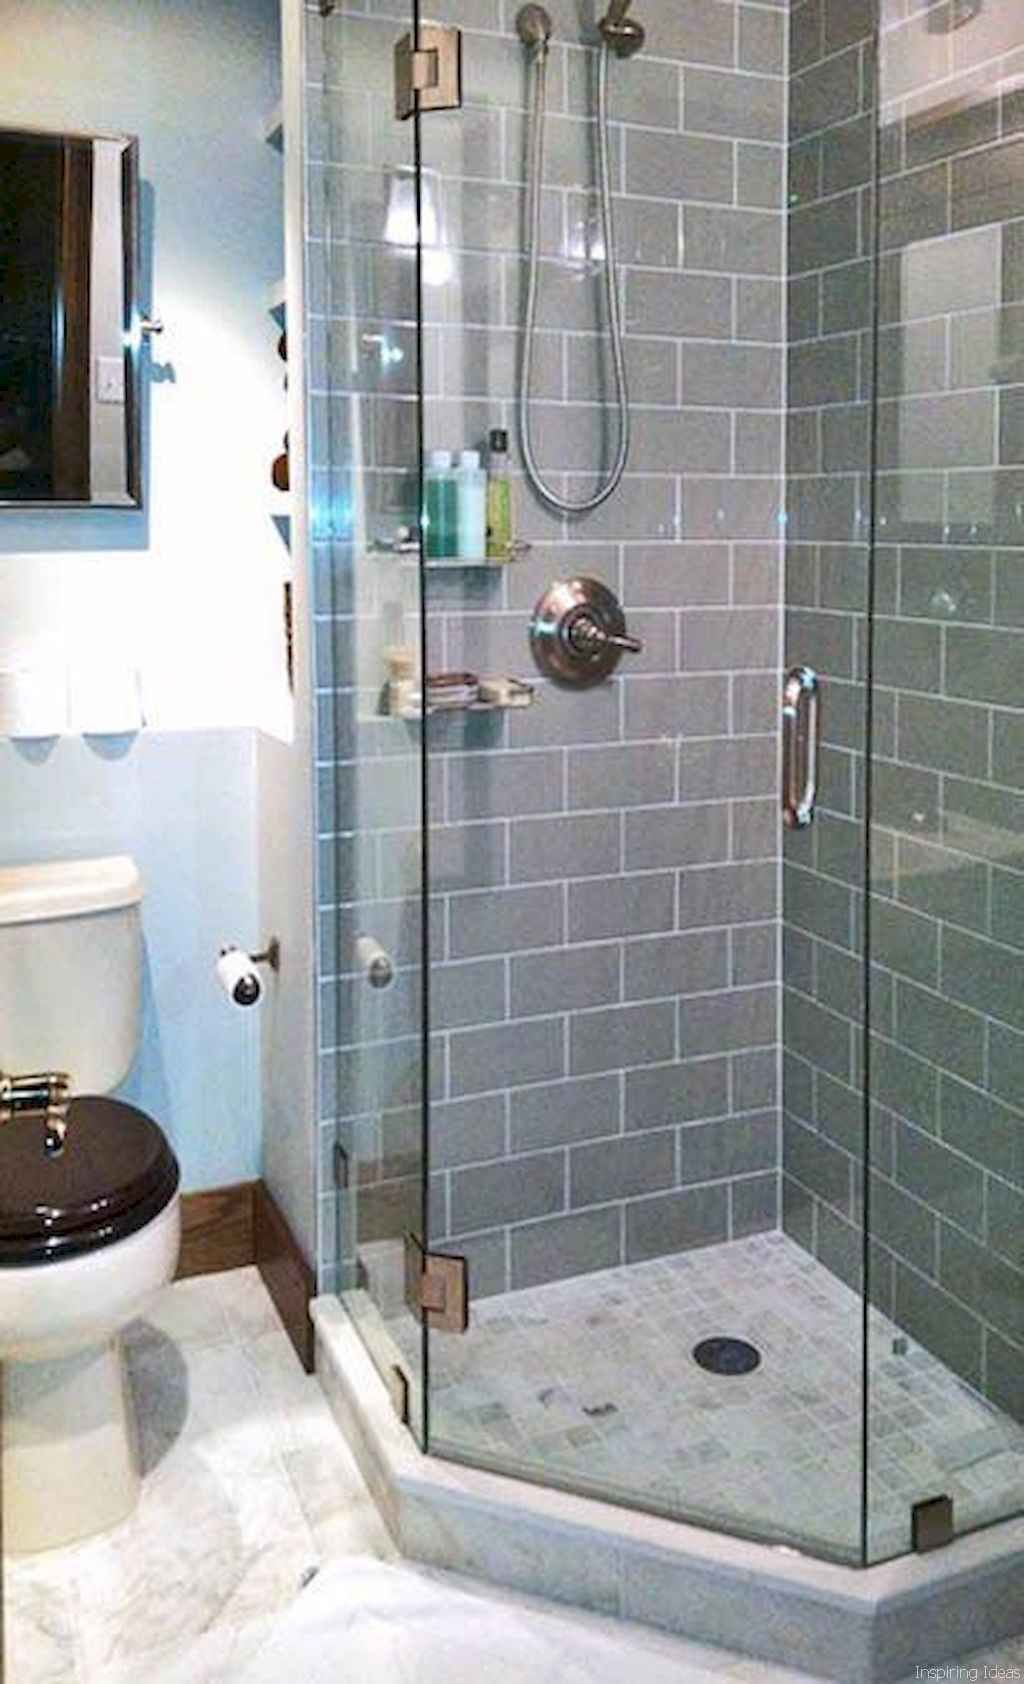 07 Awesome Gray Shower Remodel Ideas On A Budget Augustexture Com In 2020 Bathroom Remodel Shower Bathroom Remodel Small Shower Diy Bathroom Remodel